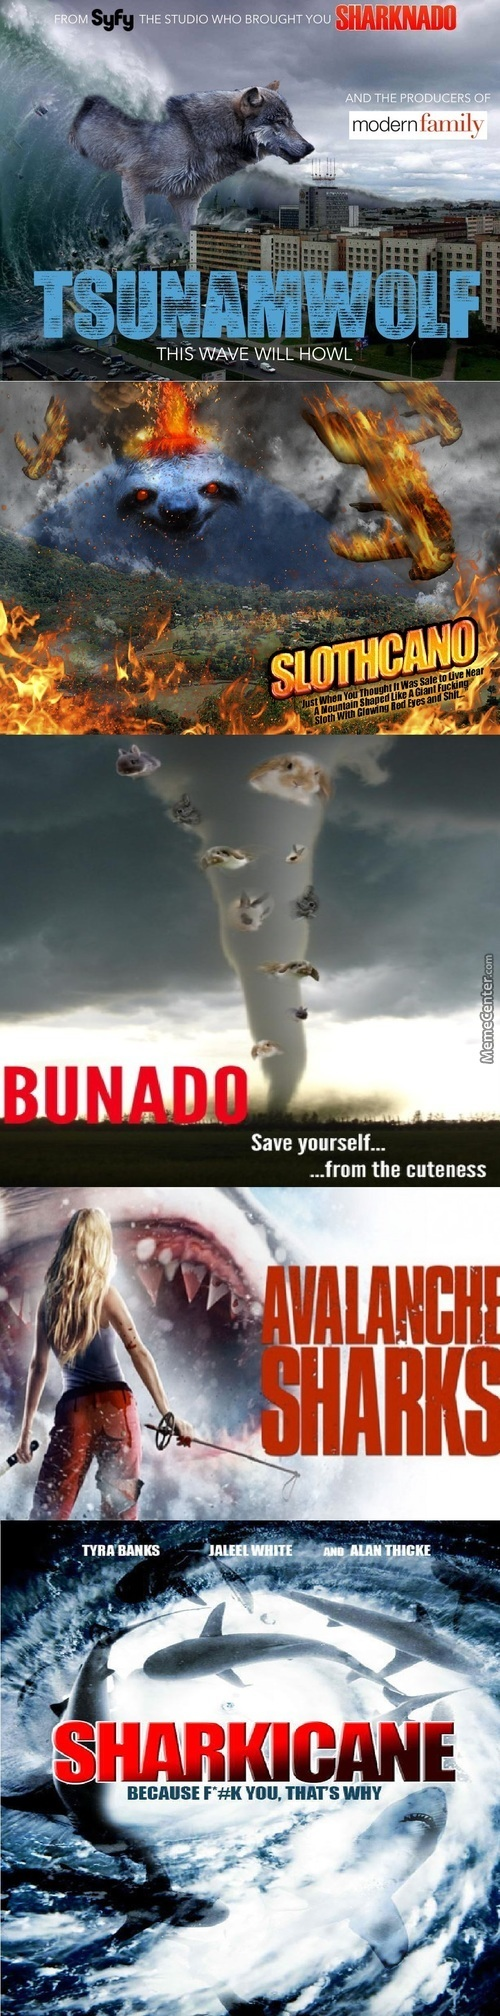 So I Found Some Sharknado Parodies In The Internet.